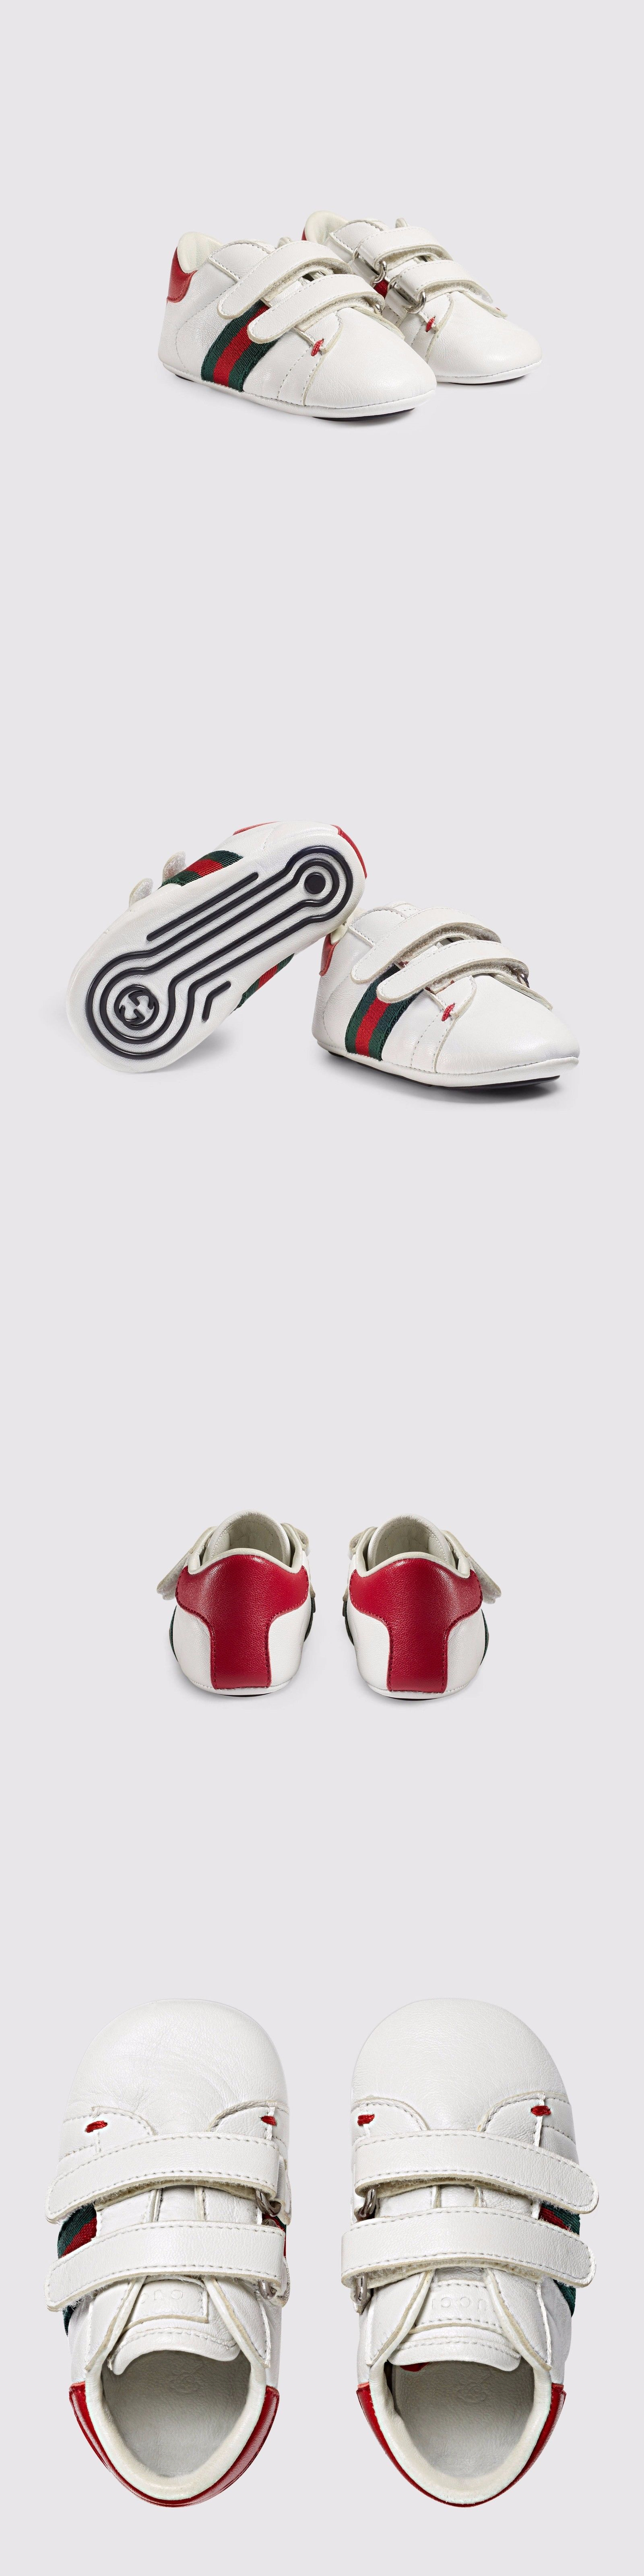 0a3c374ec3a0c Baby Shoes 147285  Nib New Gucci Baby Boys Ace White Leather Sneaker Crib  Shoes 16 18 Us 1 3 285211 -  BUY IT NOW ONLY   149 on eBay!